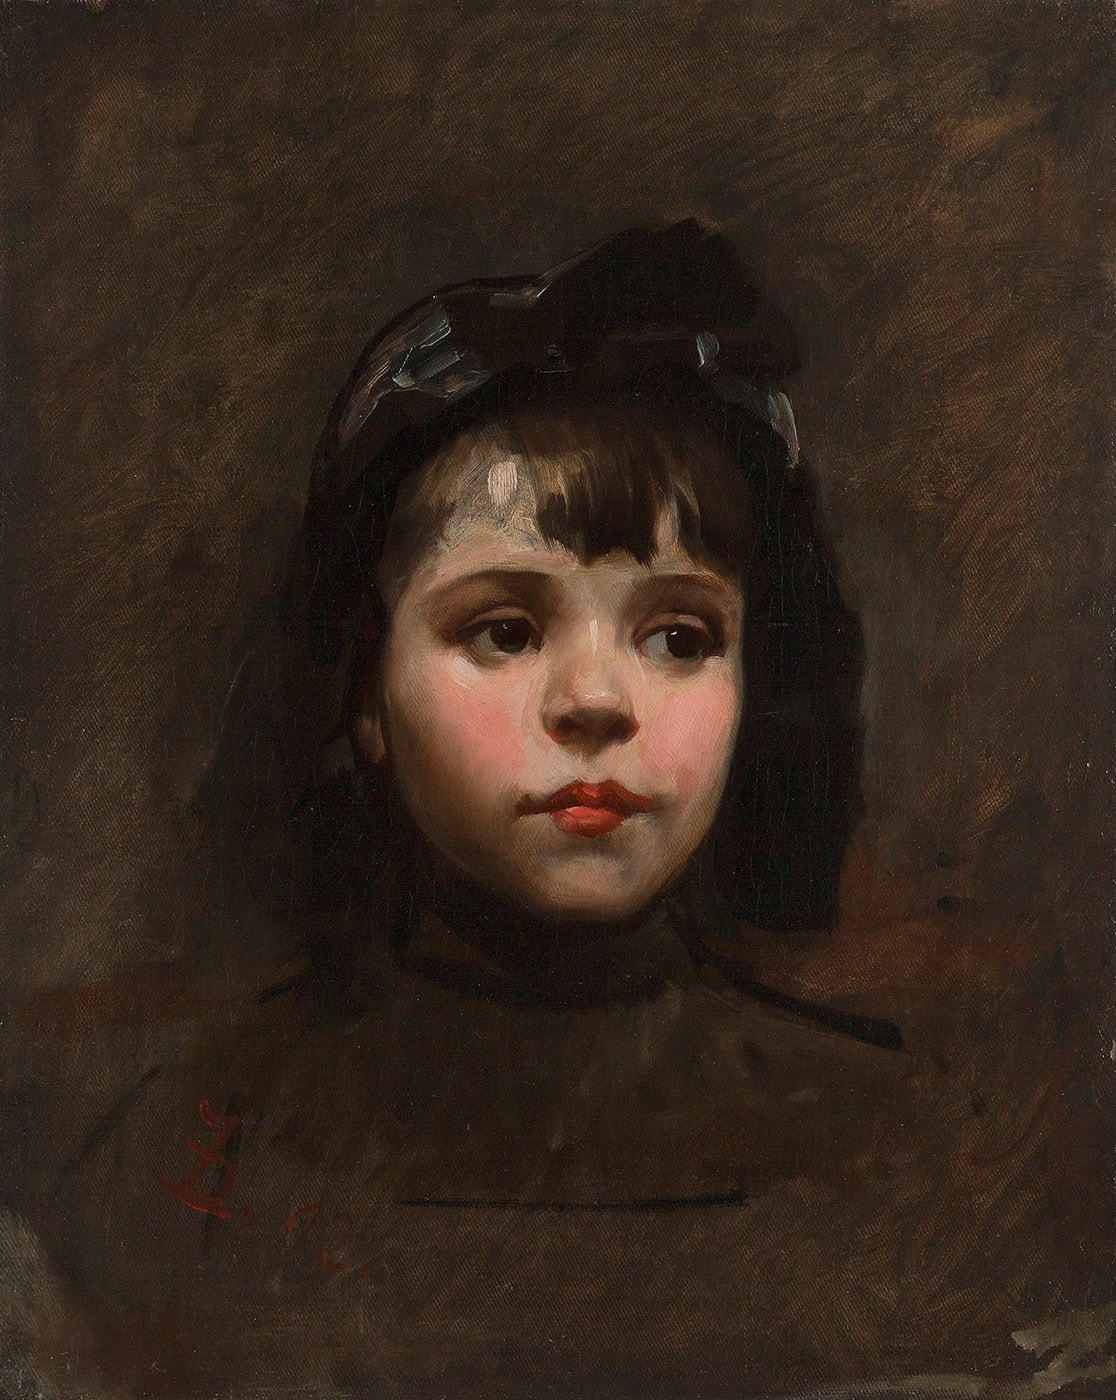 Frank Duveneck Portrait Of A Little Girl Painting At